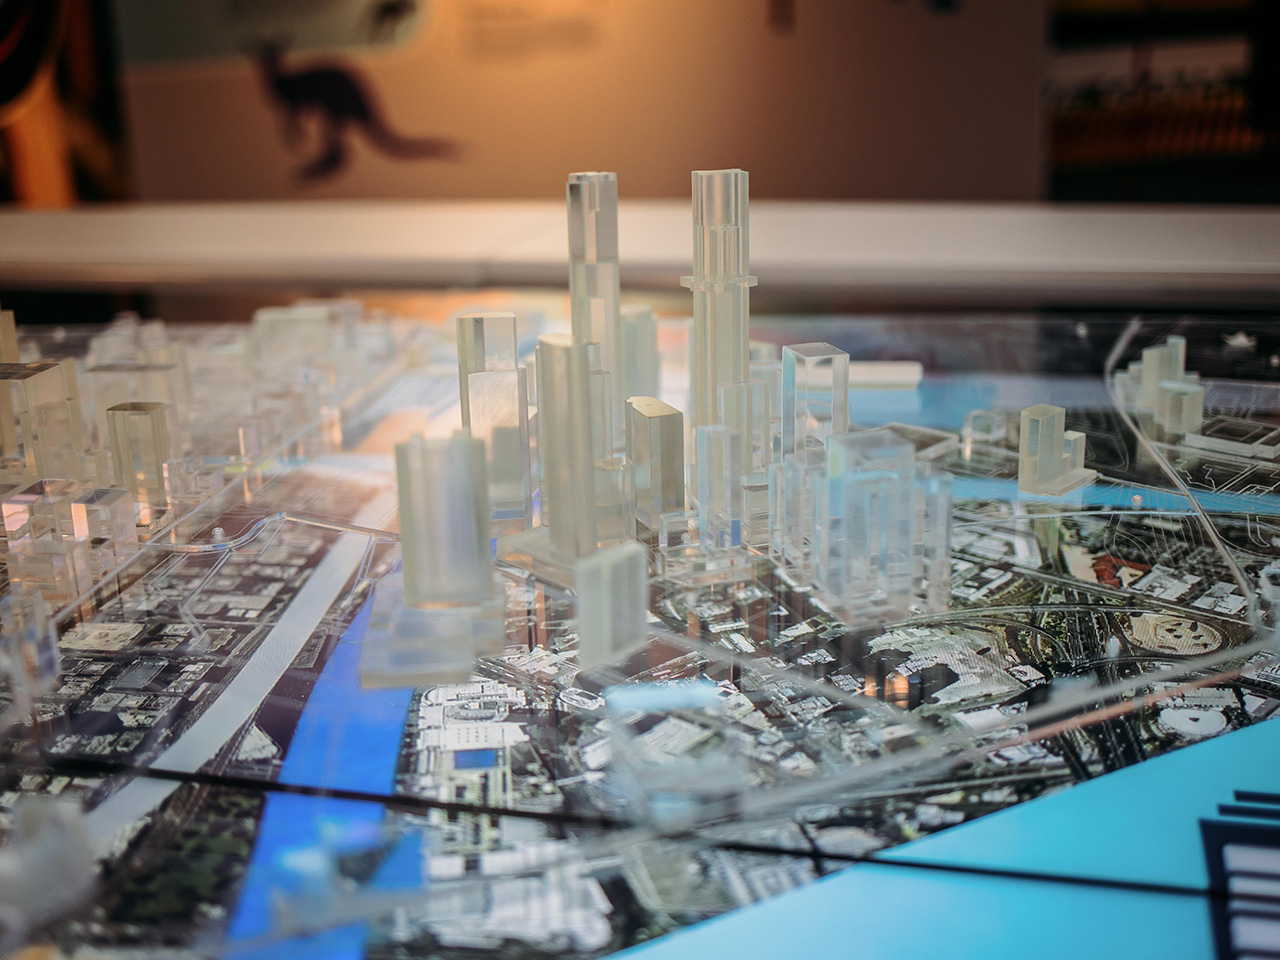 A close up of the 3D city model showing the video screen beneath it with a map of the city